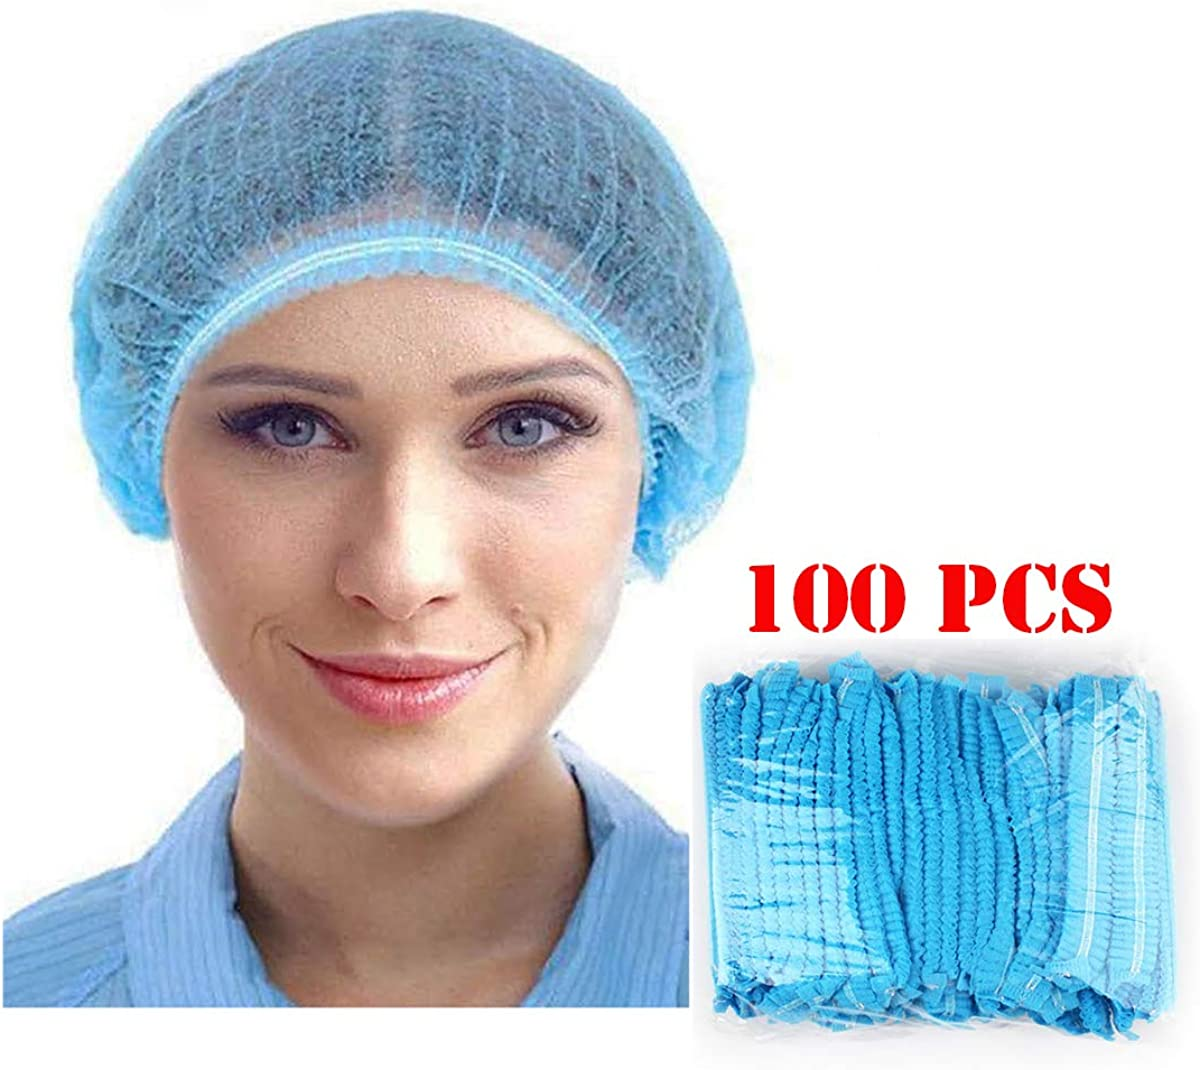 Adjustable Chef Cap Elastic Cooking Hat Food Service Hair Nets Mesh Kitchen Net Reusable Restaurant Bouffant